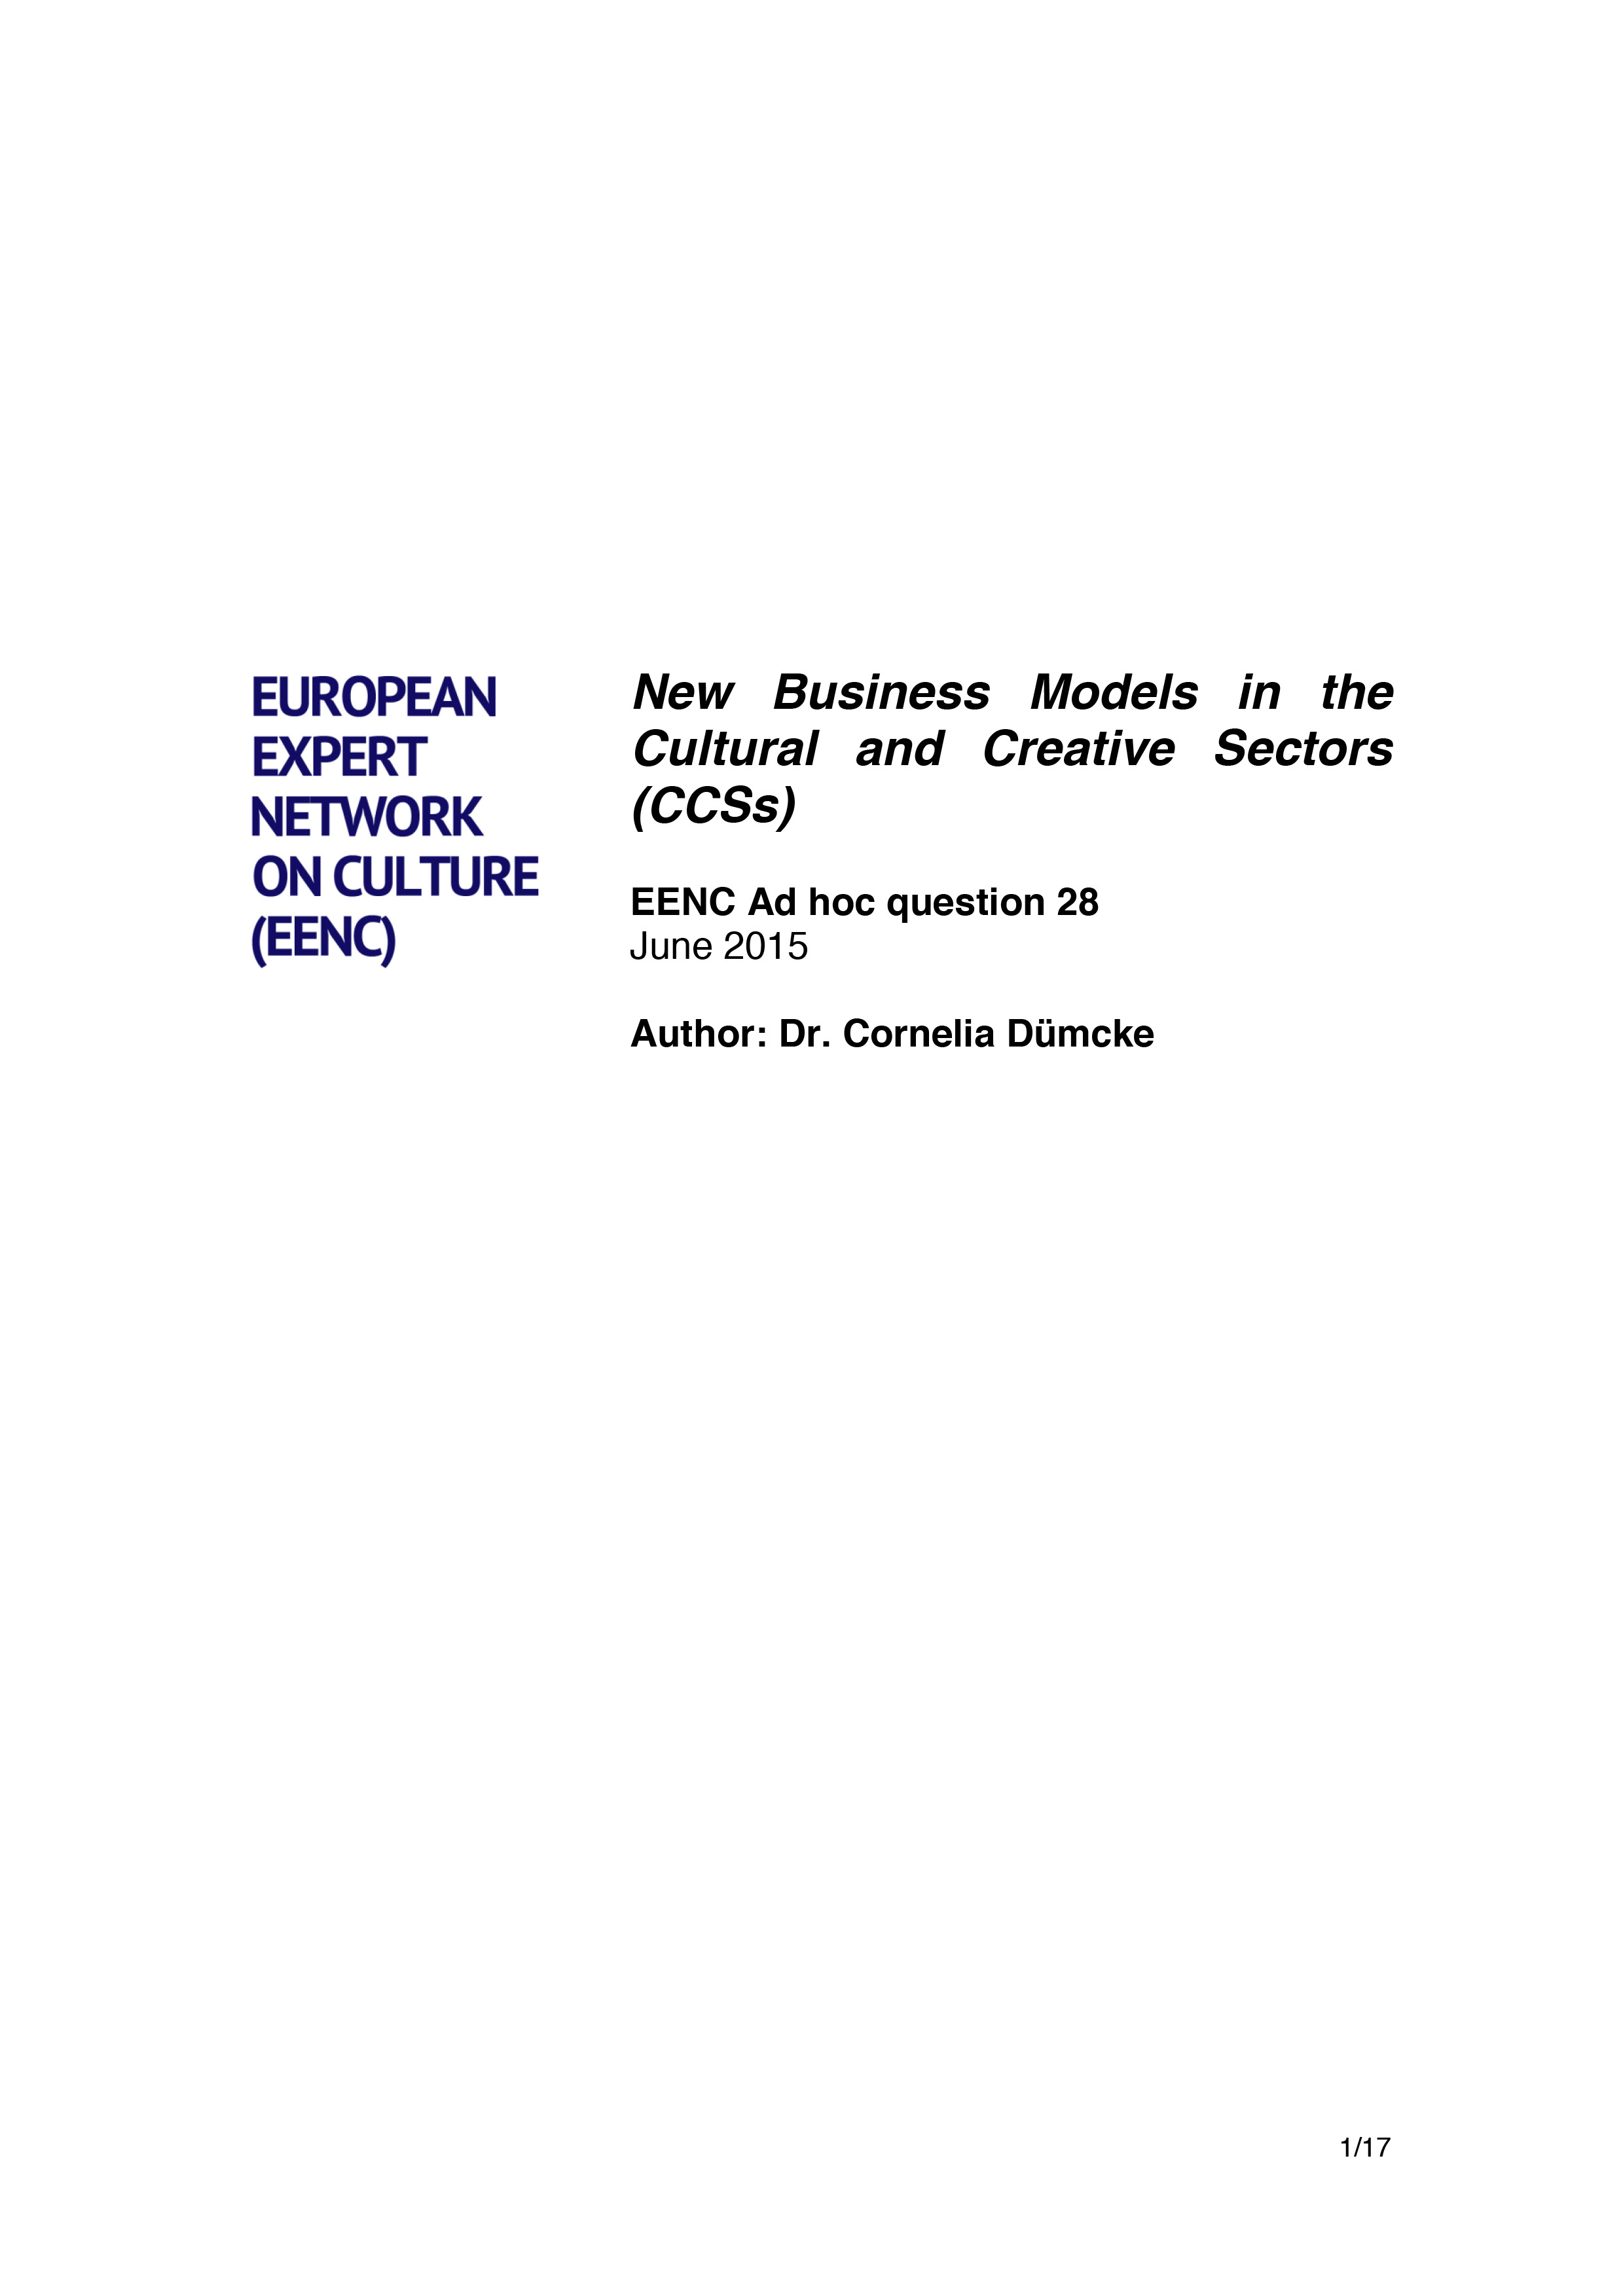 2015_DB_Dümcke_EENC_Ad hoc question_New Business Models in the CCSs.jpg